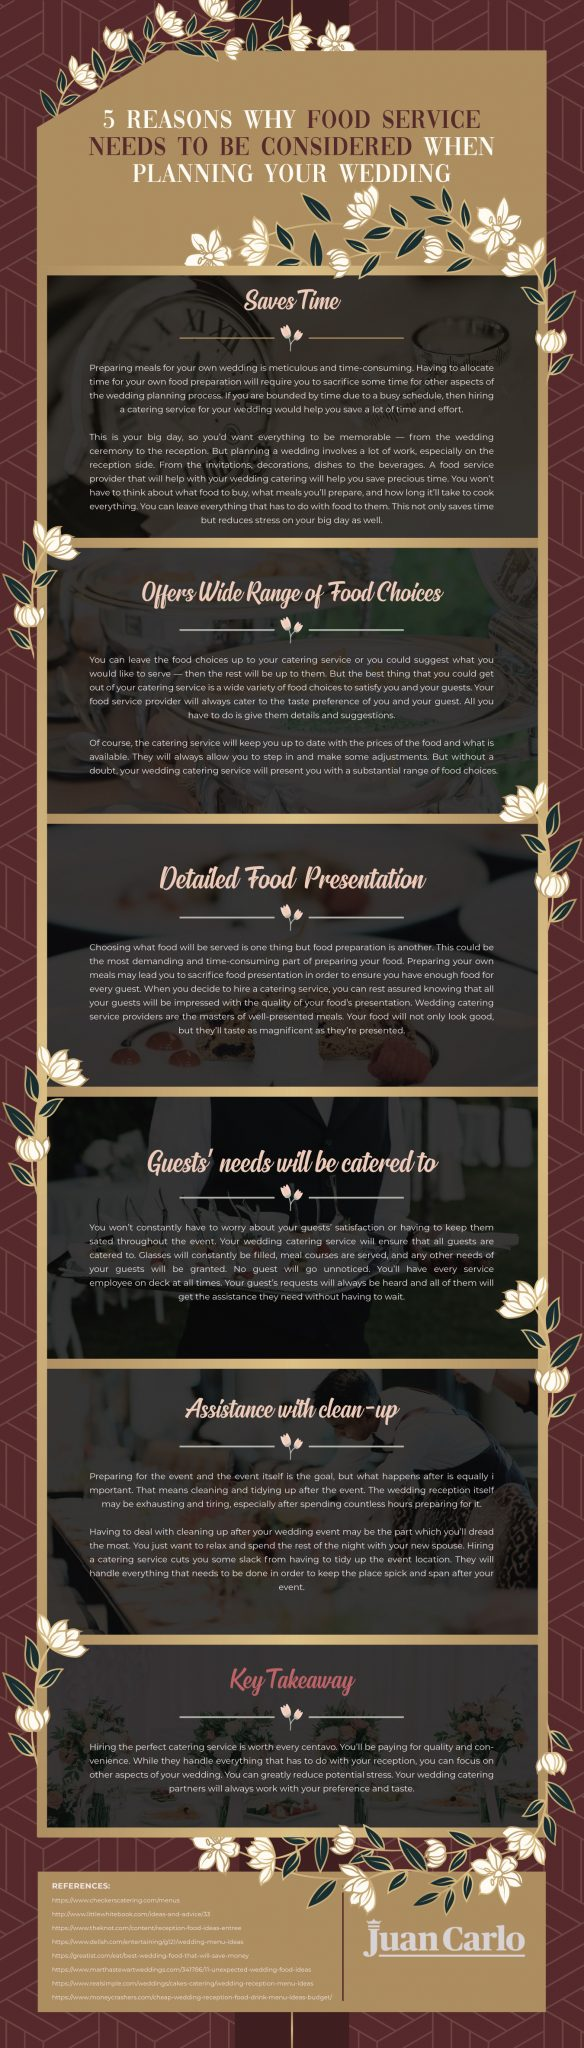 5 Reasons Why Food Service Needs To Be Considered When Planning Your Wedding